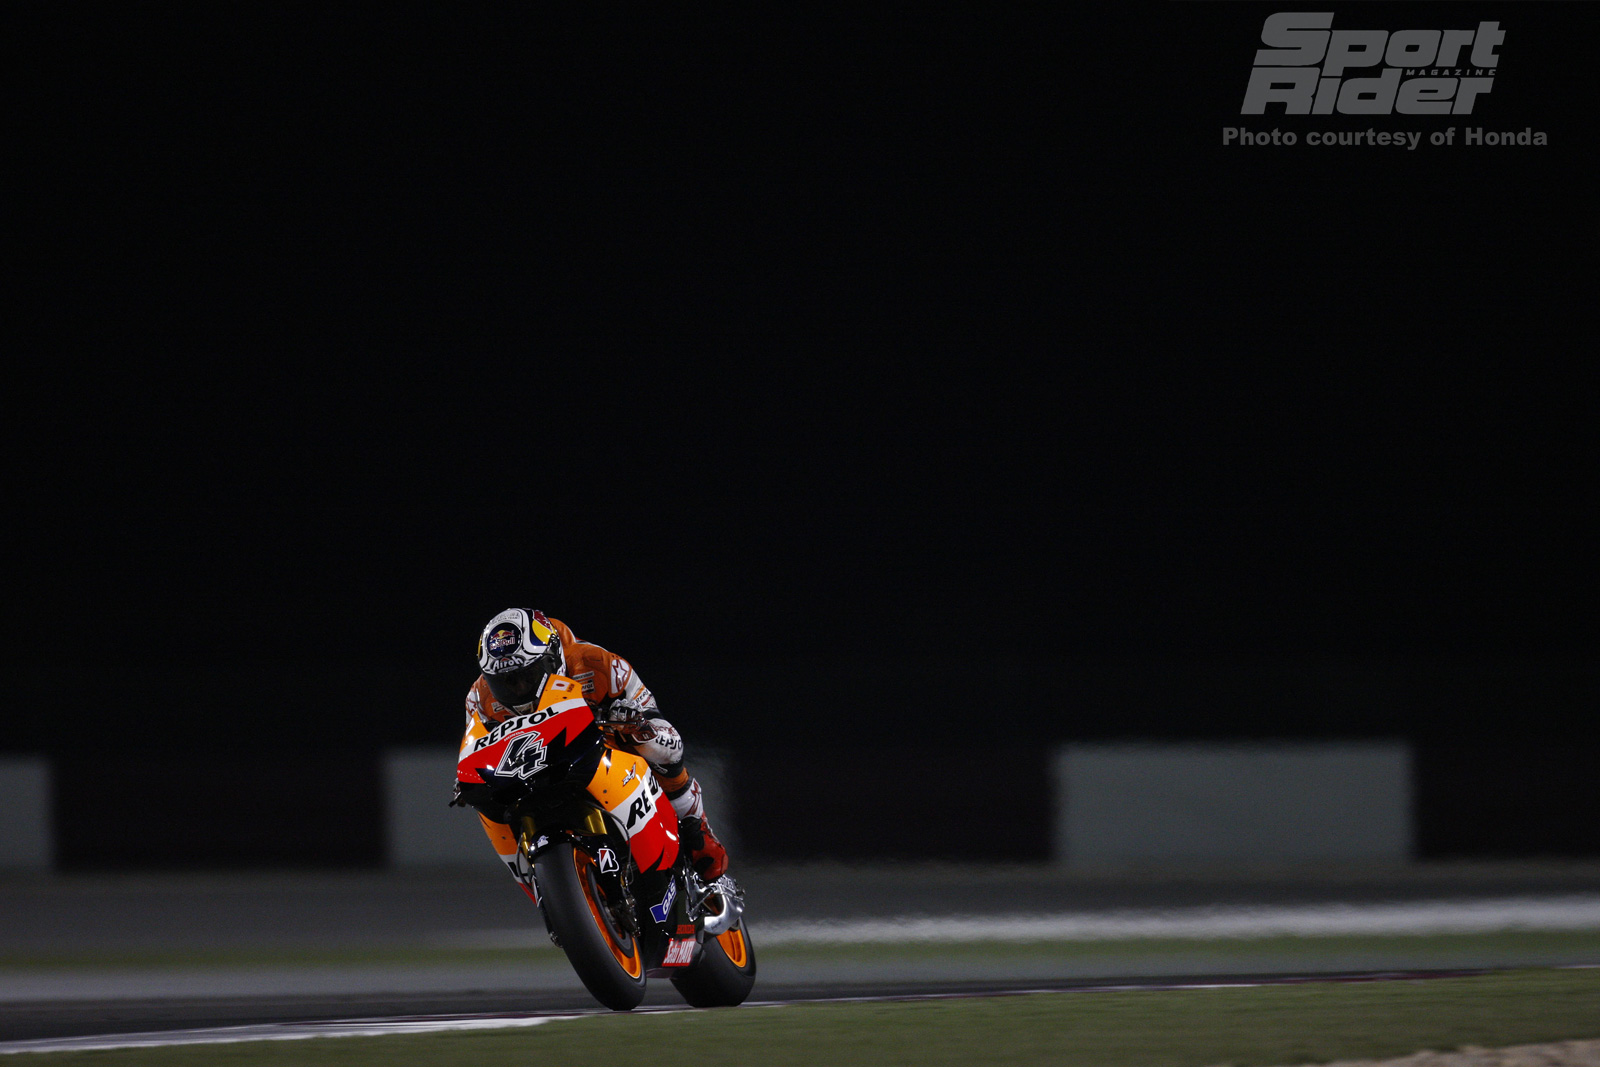 MotoGP Honda Wallpaper Photos